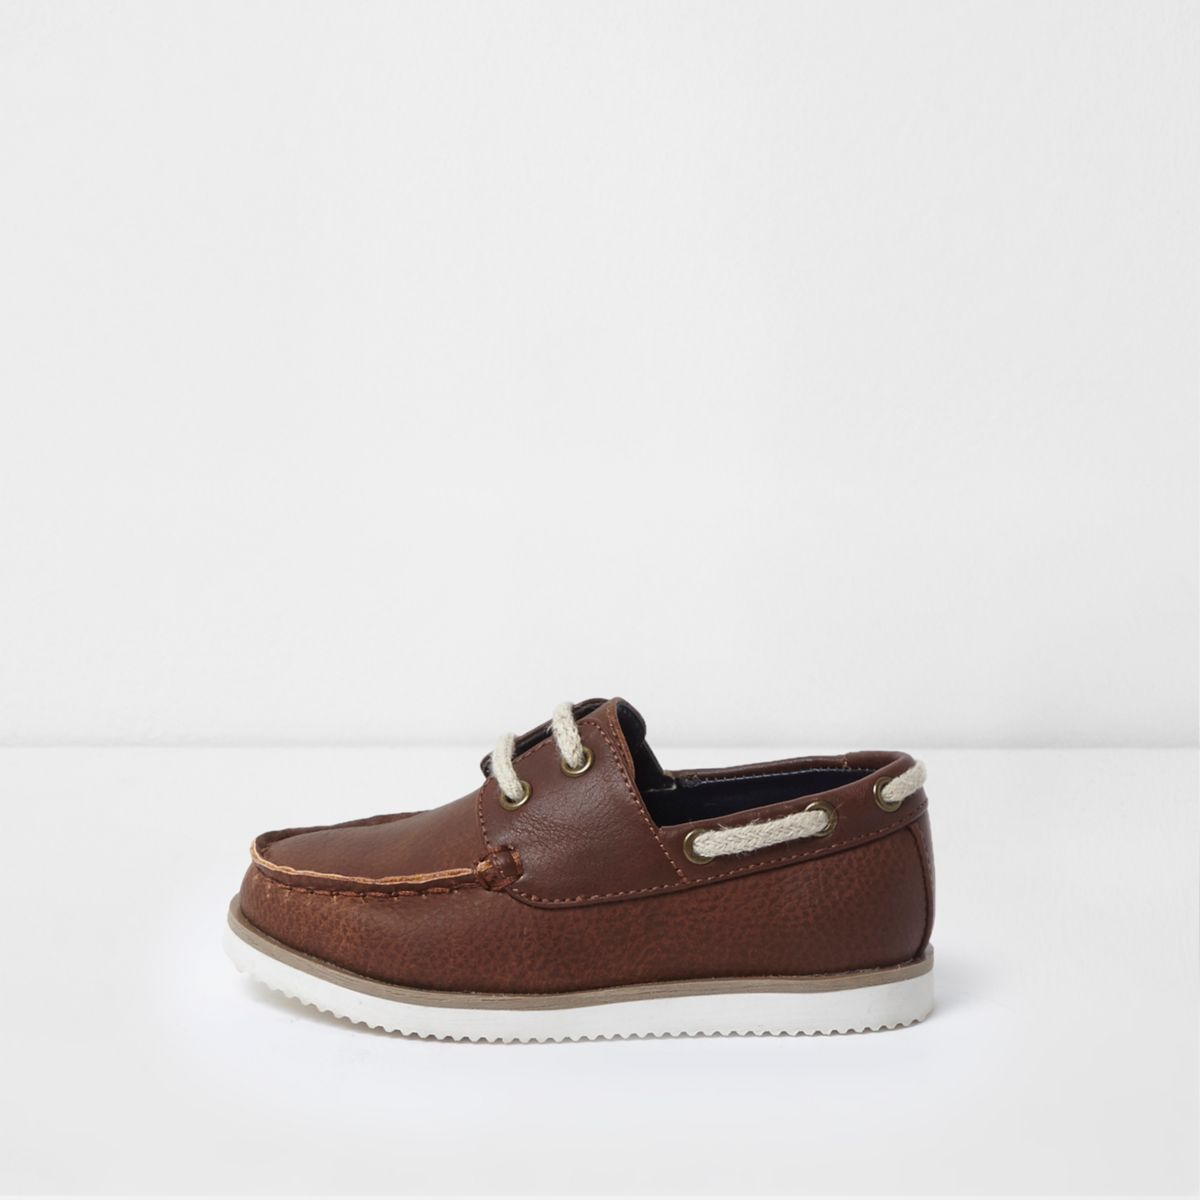 Brown Leather Boat Shoes River Island